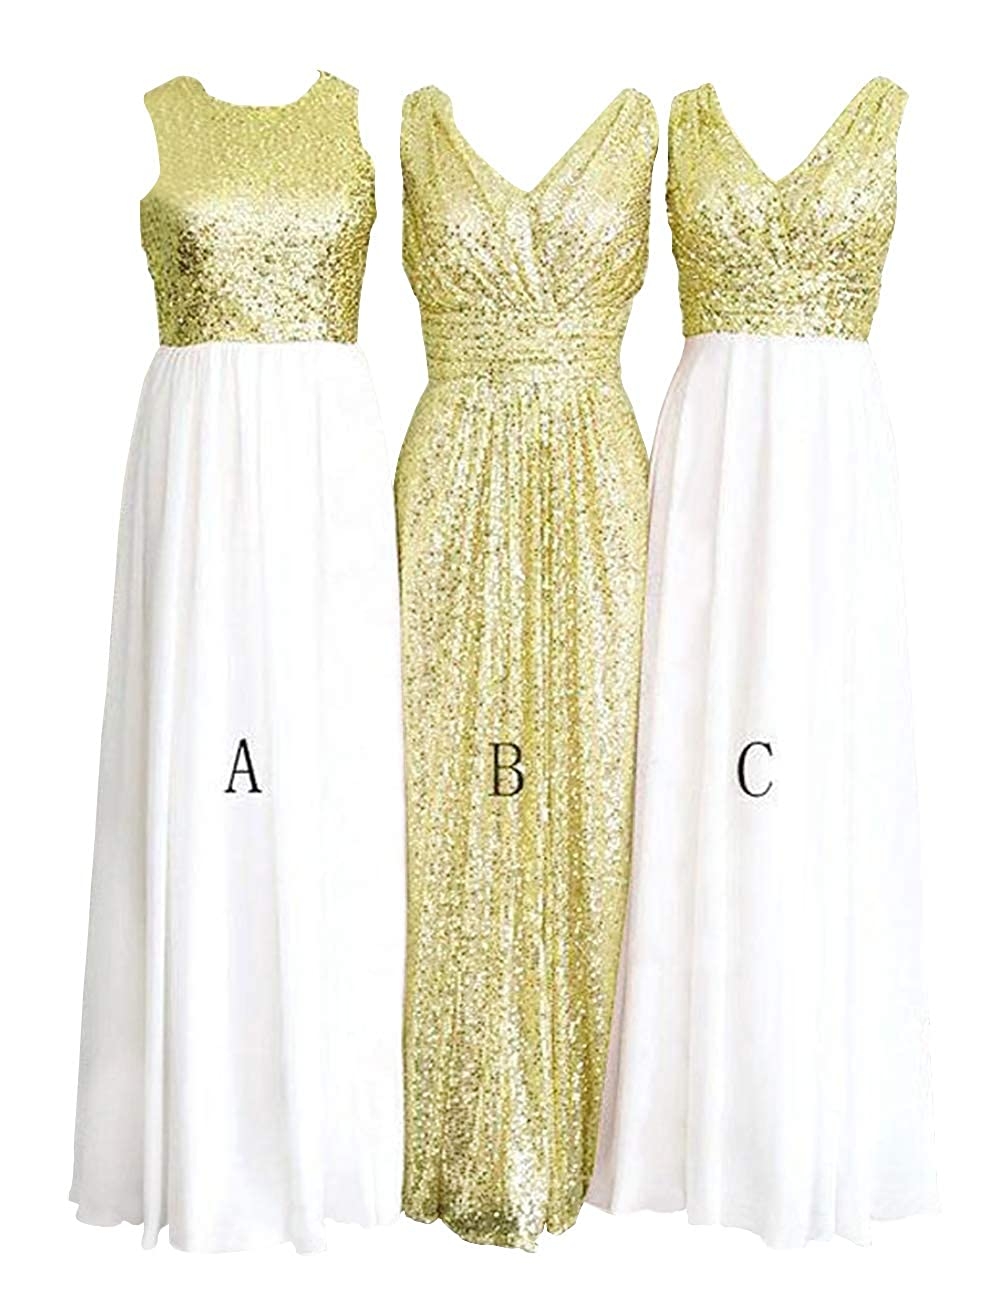 Cwhite and gold Yellow H.S.D Women's pink gold Sequins Paillettes Long Bridesmaid Party Prom Dress